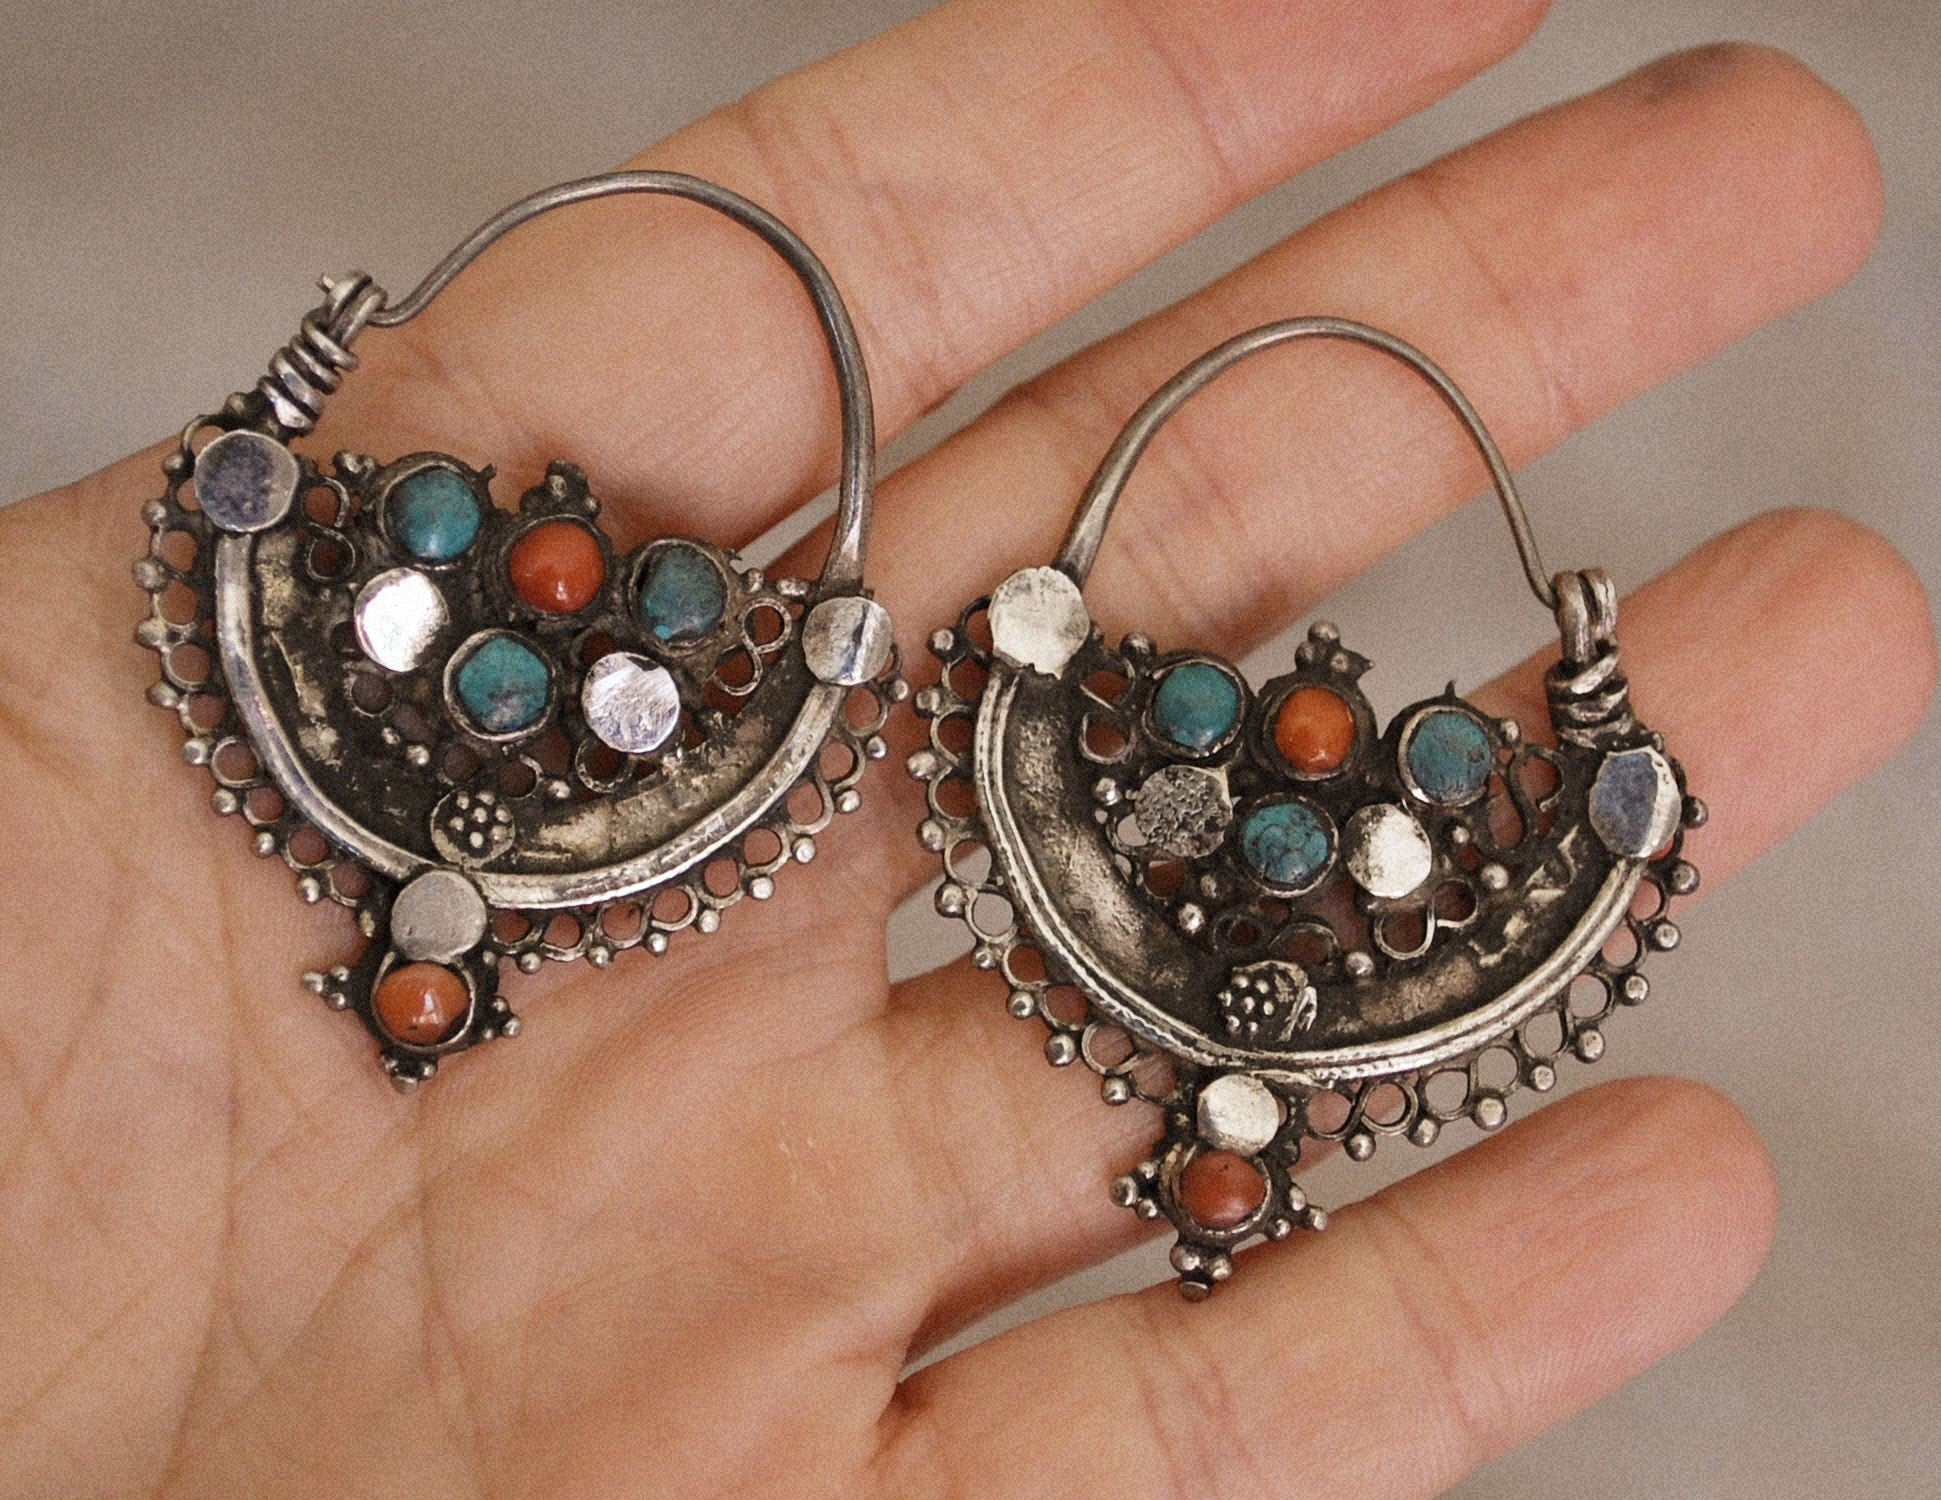 Antique Afghani Hoop Earrings with Turquoise and Coral - Tribal Hoop Earrings - Afghani Earrings - Ethnic Hoop Earrings - Afghani Jewelry